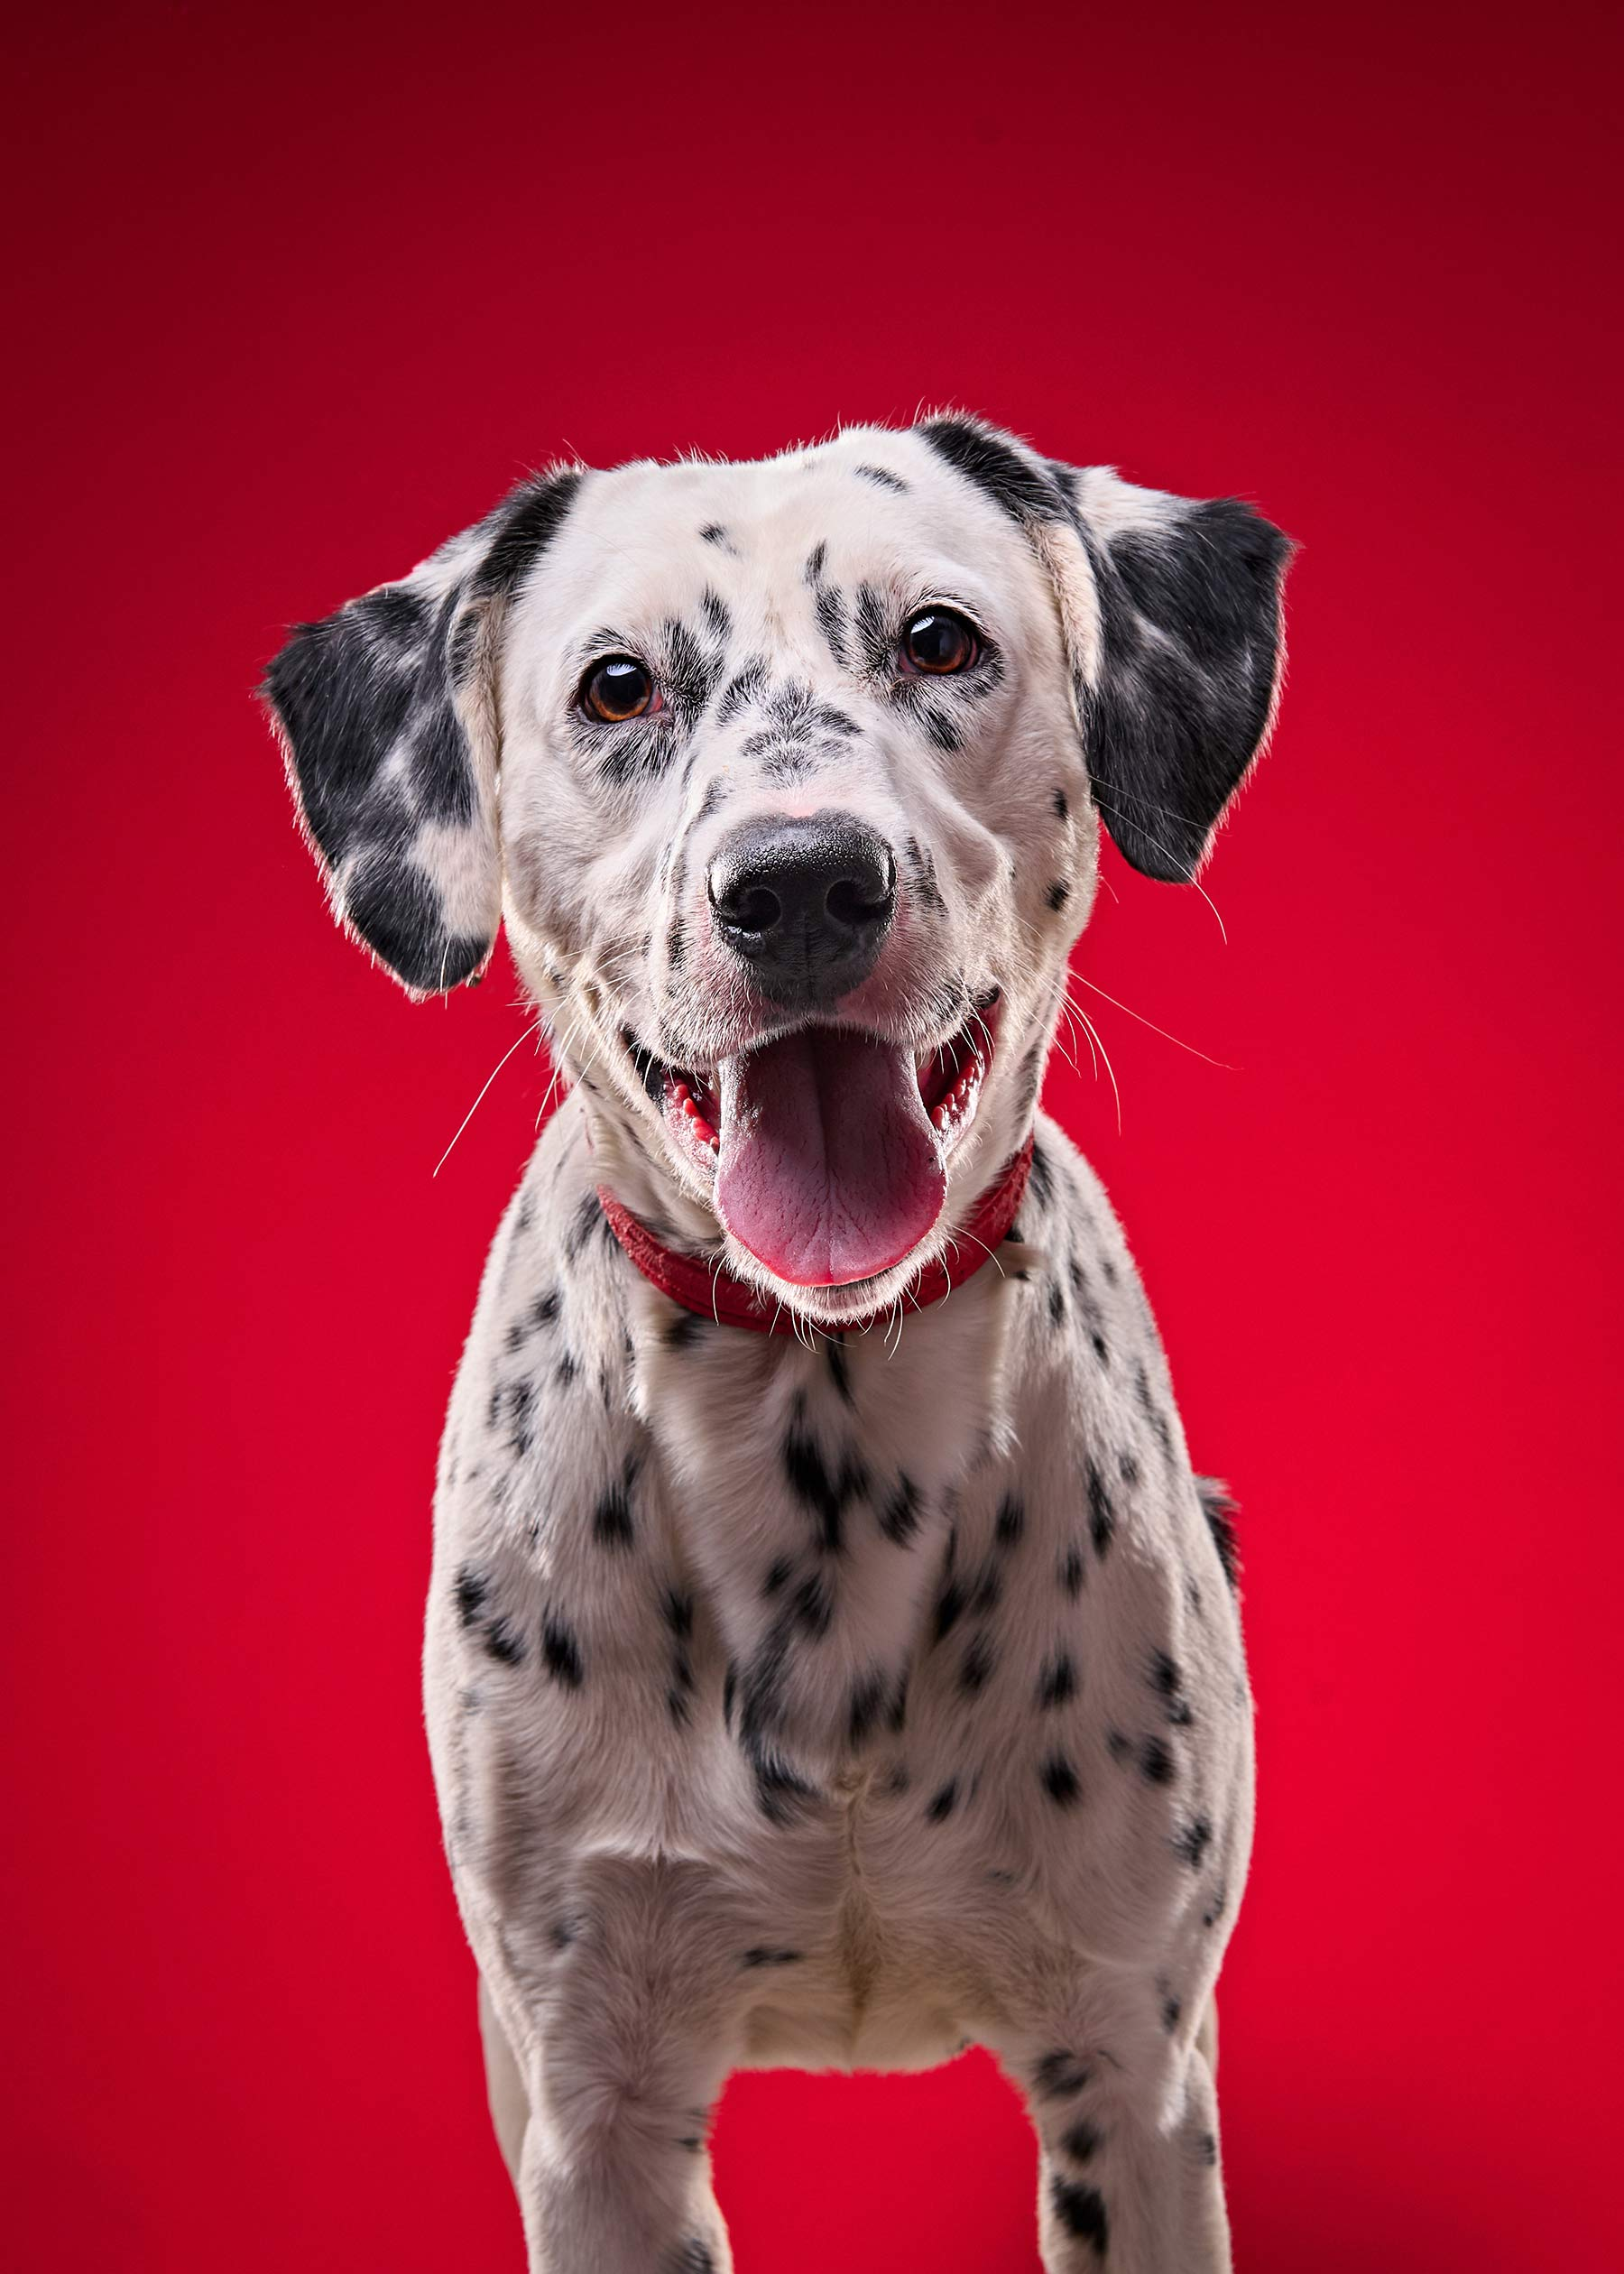 A-studio-portrait-of-a-happy-dalmatian-dog-on-a-bright-red-background